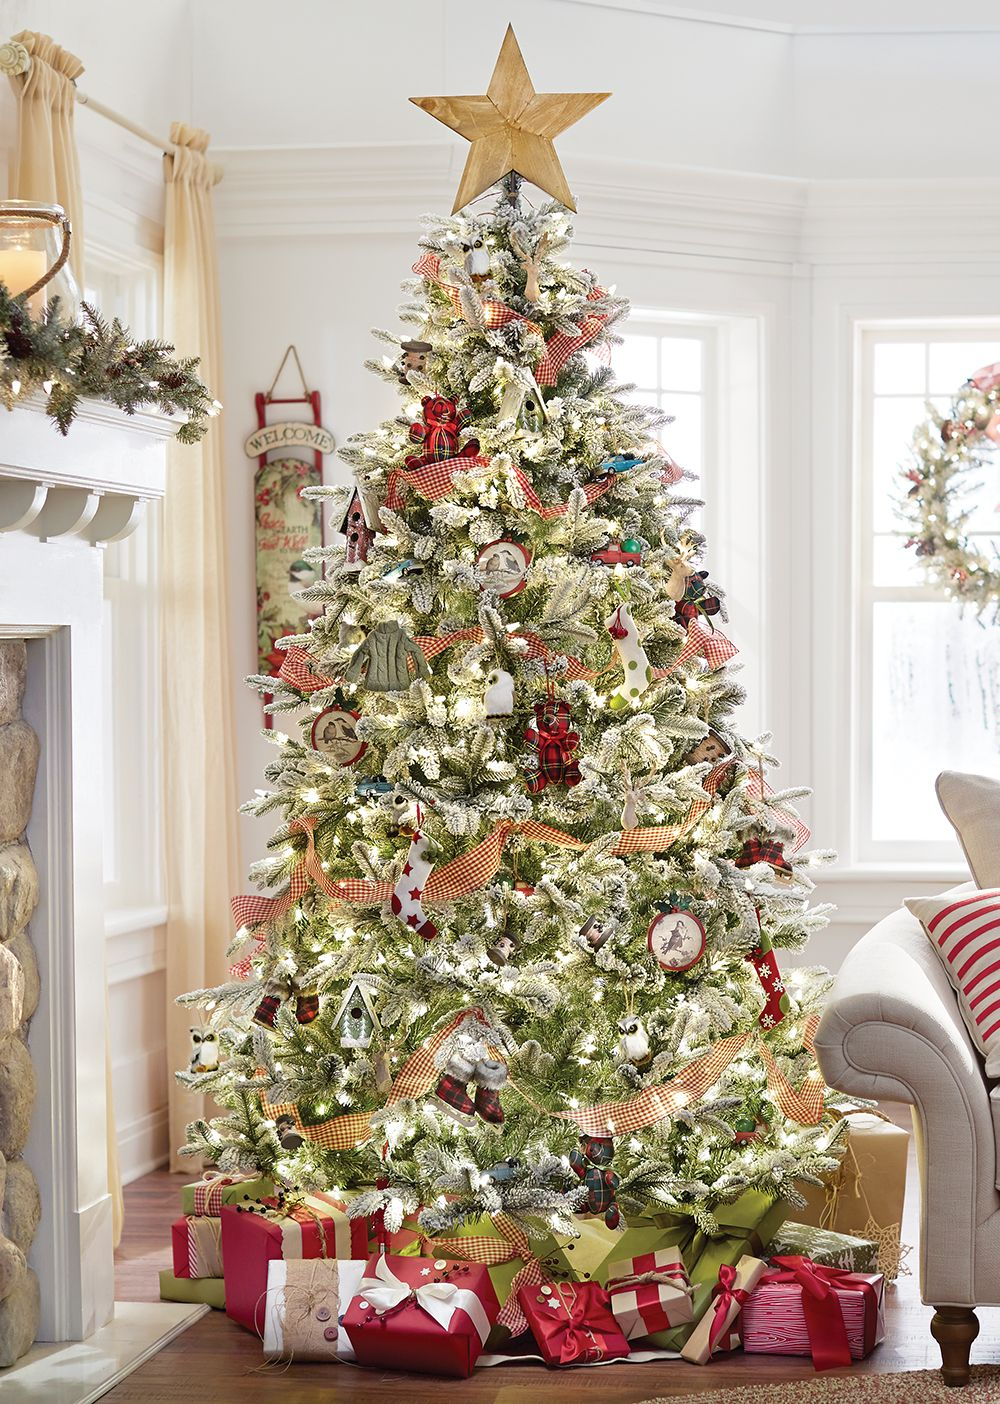 A Snowy Christmas Tree Decked Out In American Traditional Style There S Nothing That Brings Us Mo Cottage Christmas Christmas Tree Themes Snowy Christmas Tree